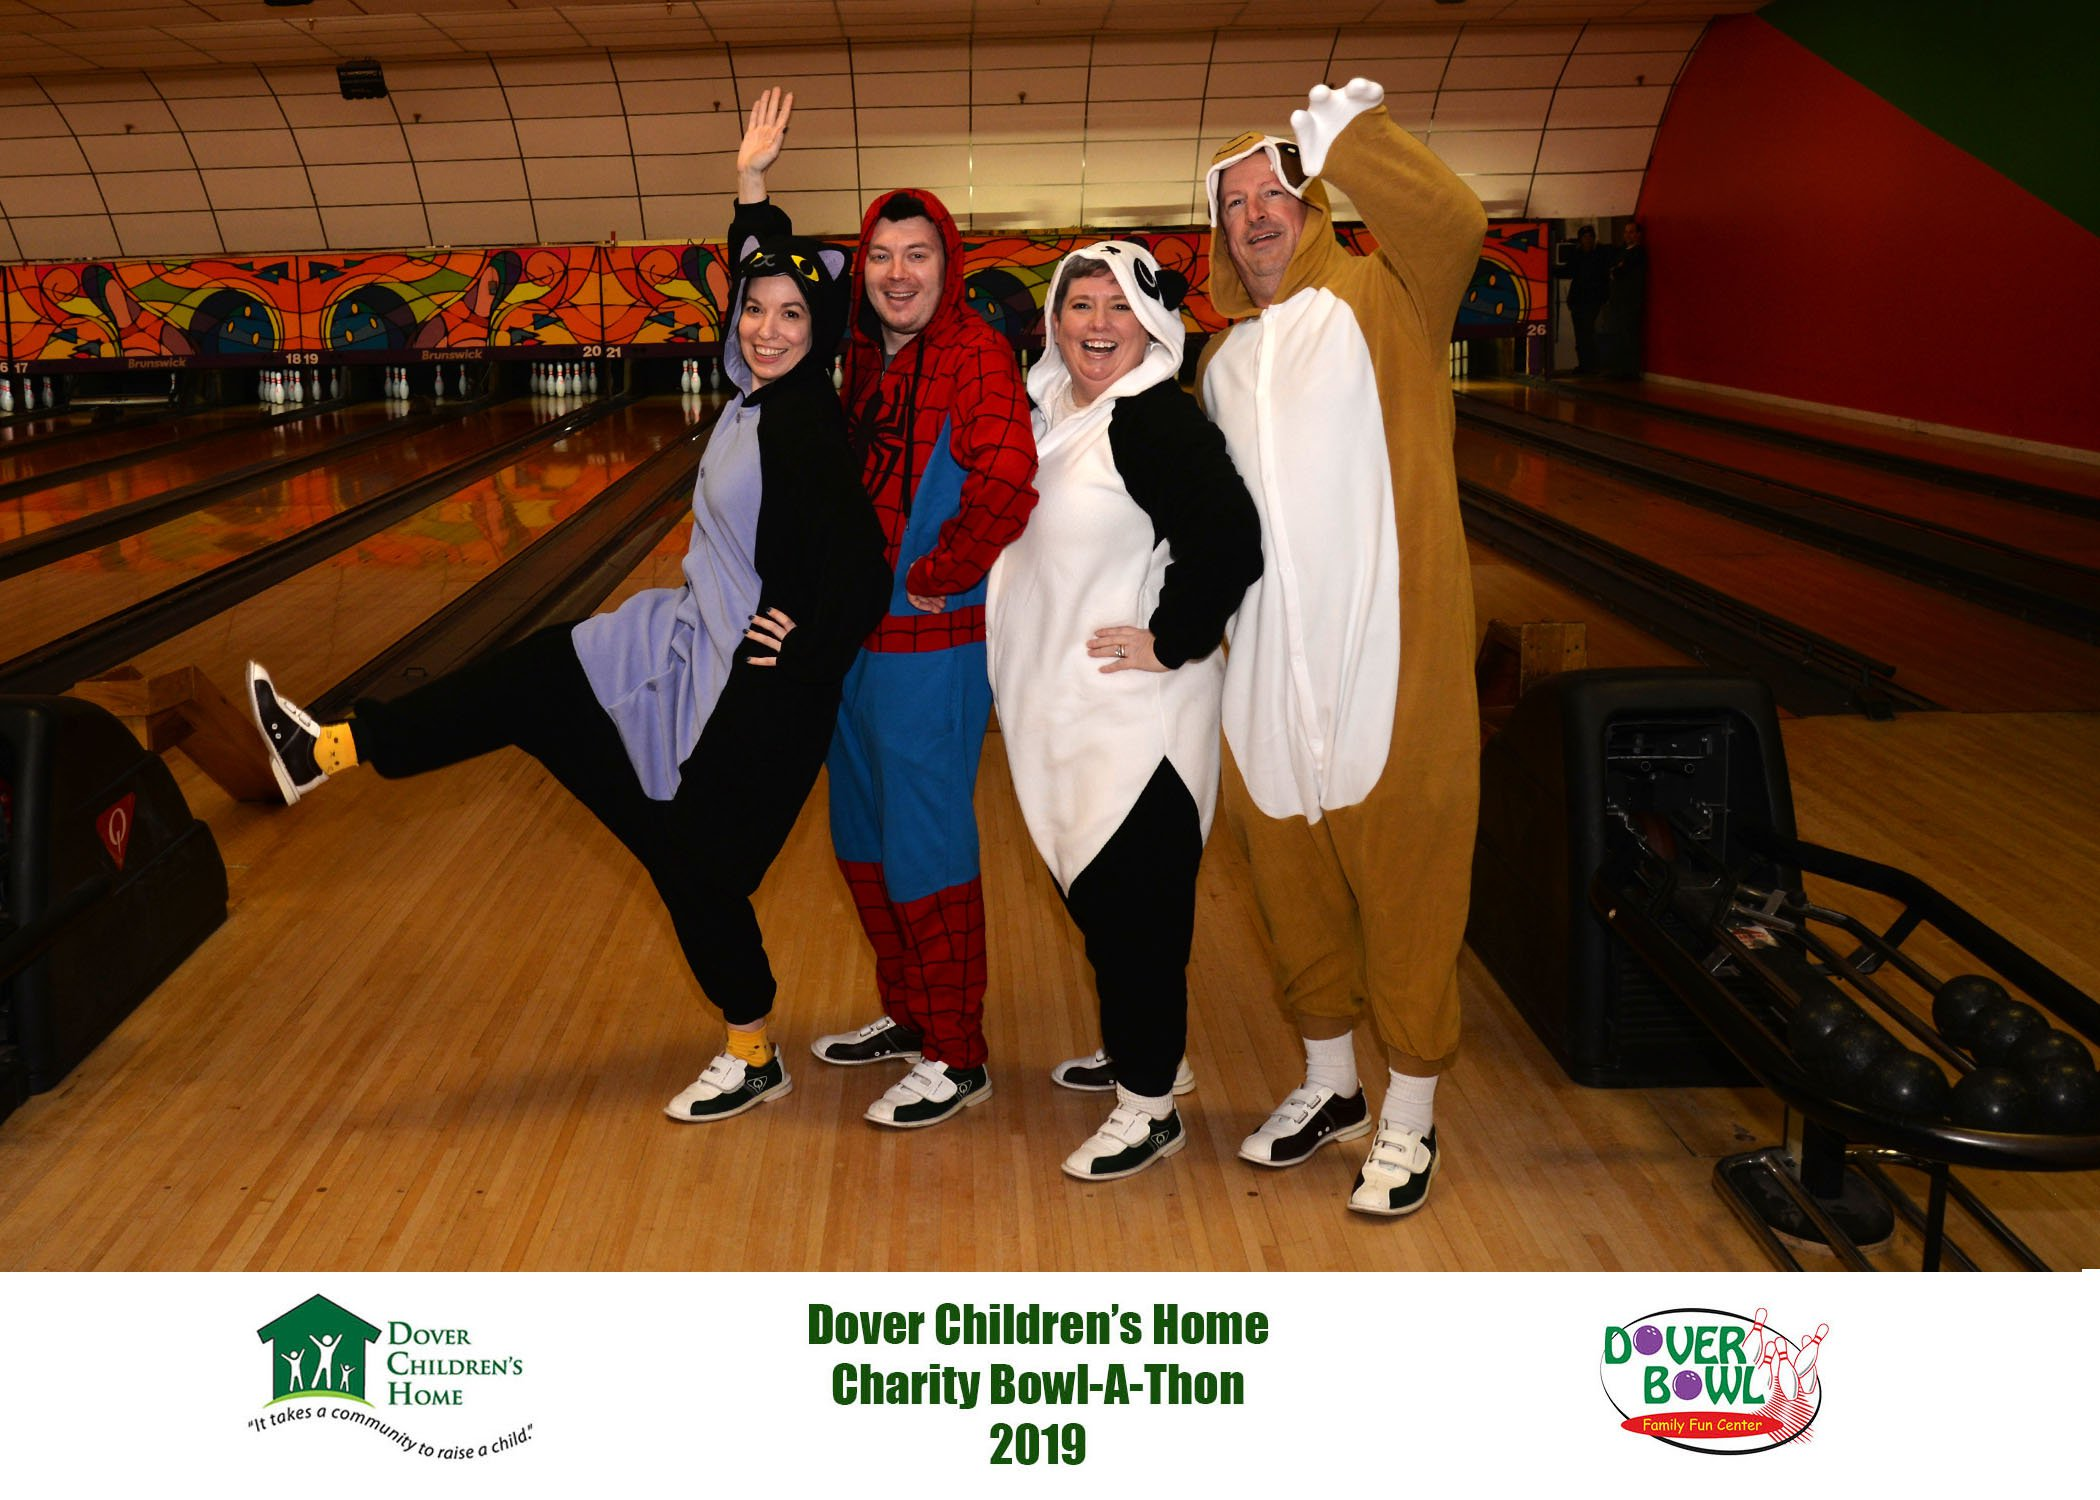 Dover Children's Home Bowl-a-thon